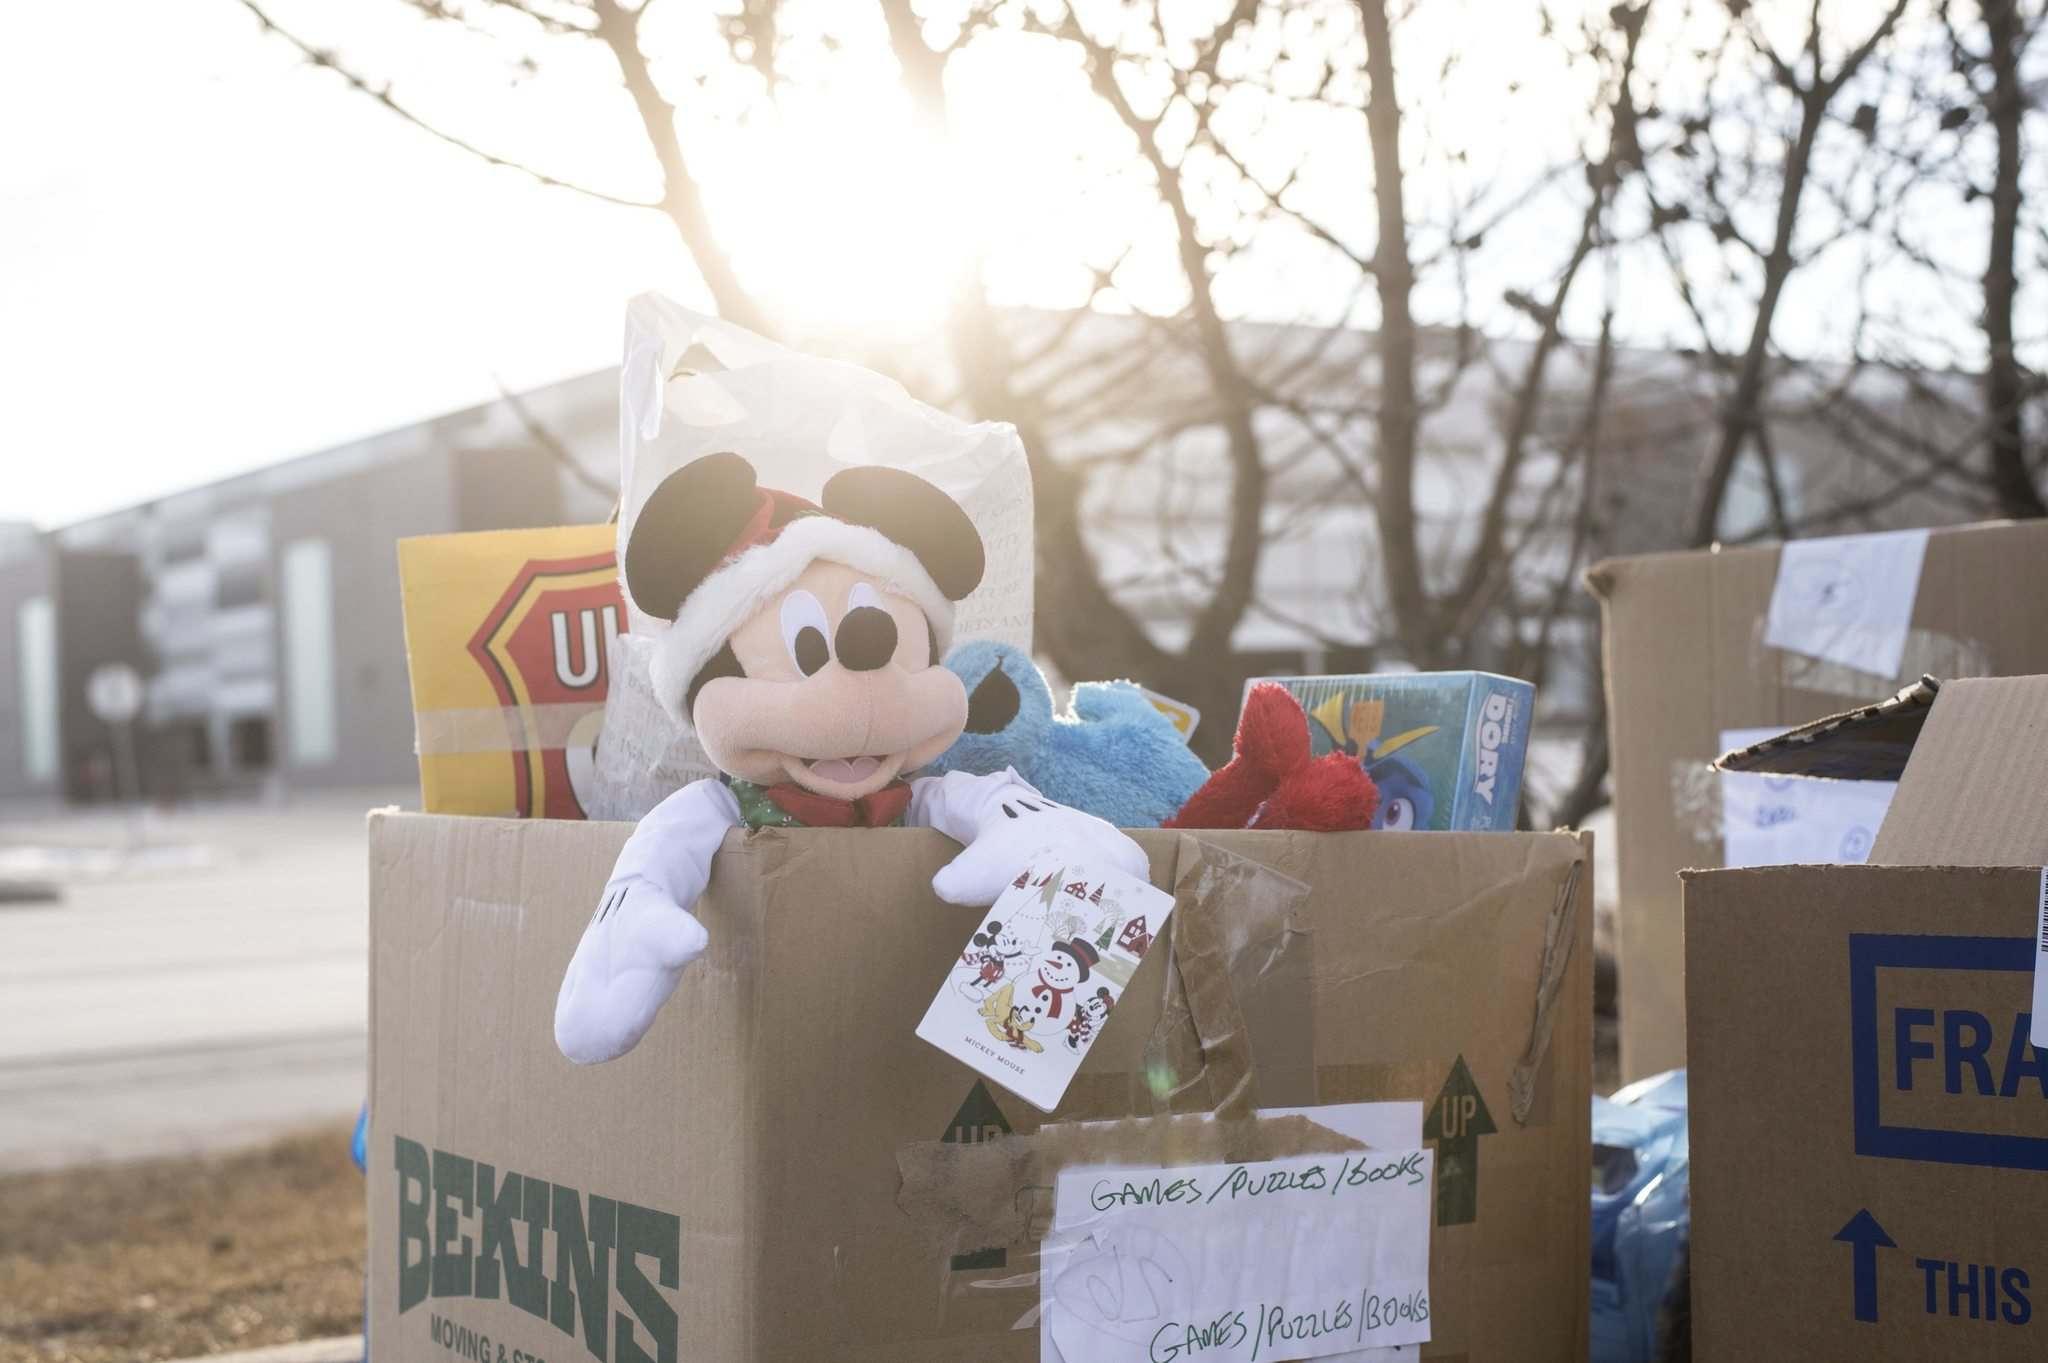 A stuffed Mickey Mouse doll sticks out of a box of toy donations for the Salvation Army's Toy Mountain drive in the Toys' R Us parking lot on Friday. (Mike Sudoma / Winnipeg Free Press)